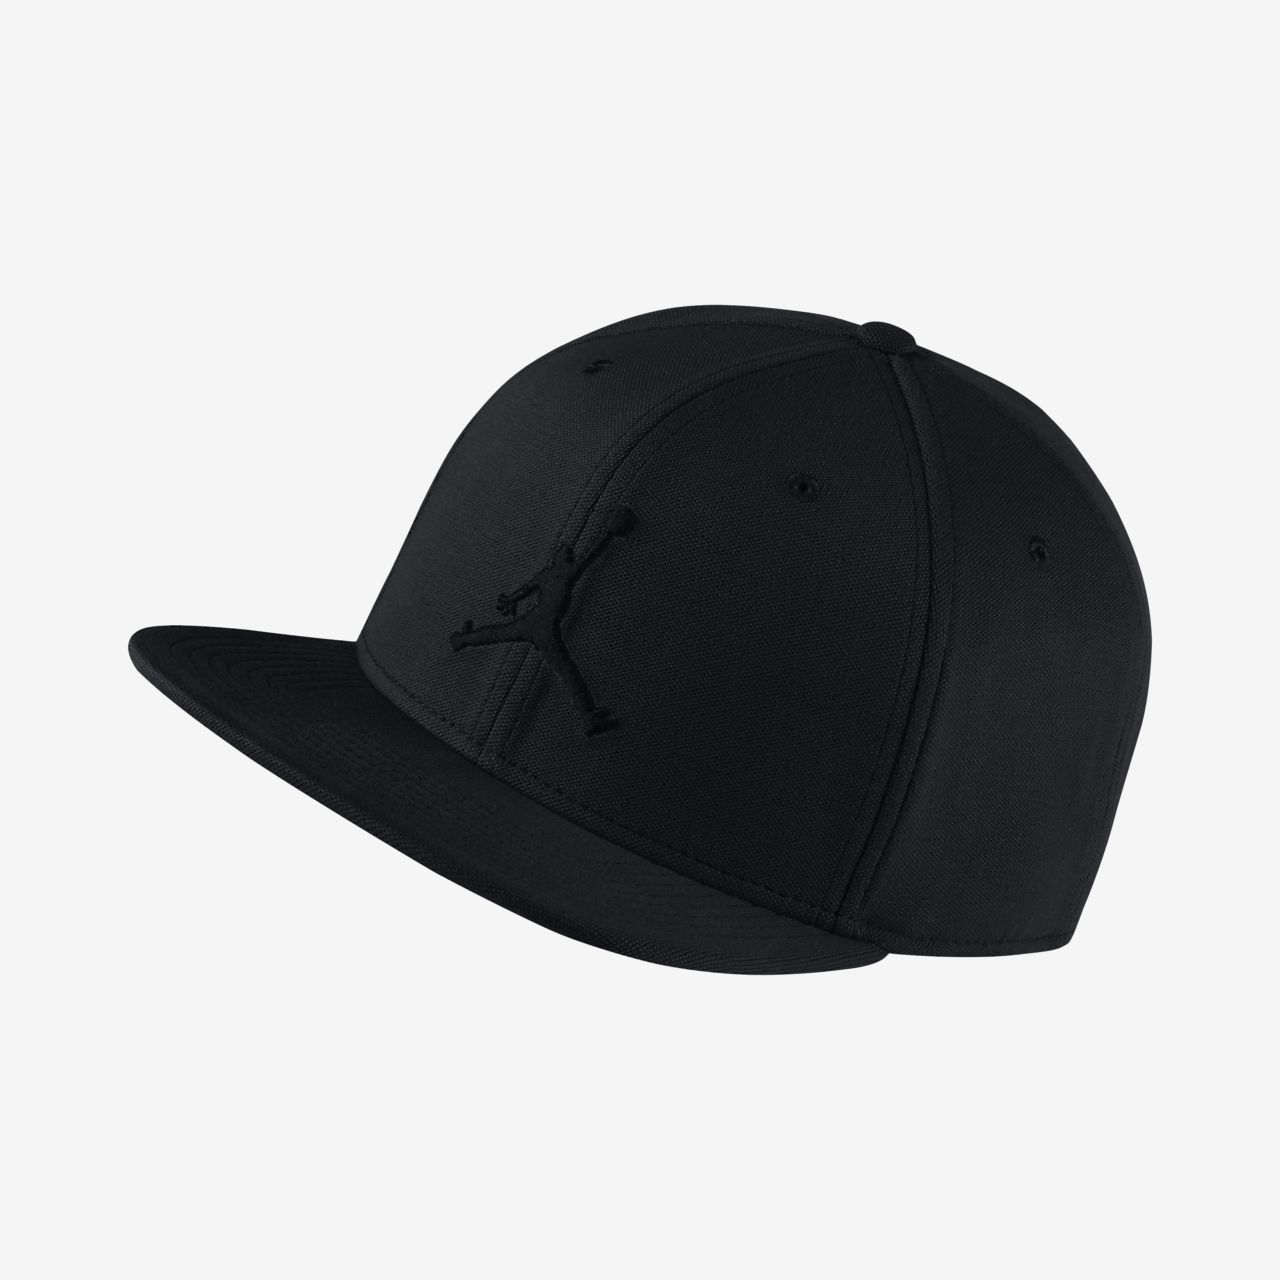 9e266db31dad0 Low Resolution Casquette réglable Jordan Jumpman Snapback Casquette  réglable Jordan Jumpman Snapback